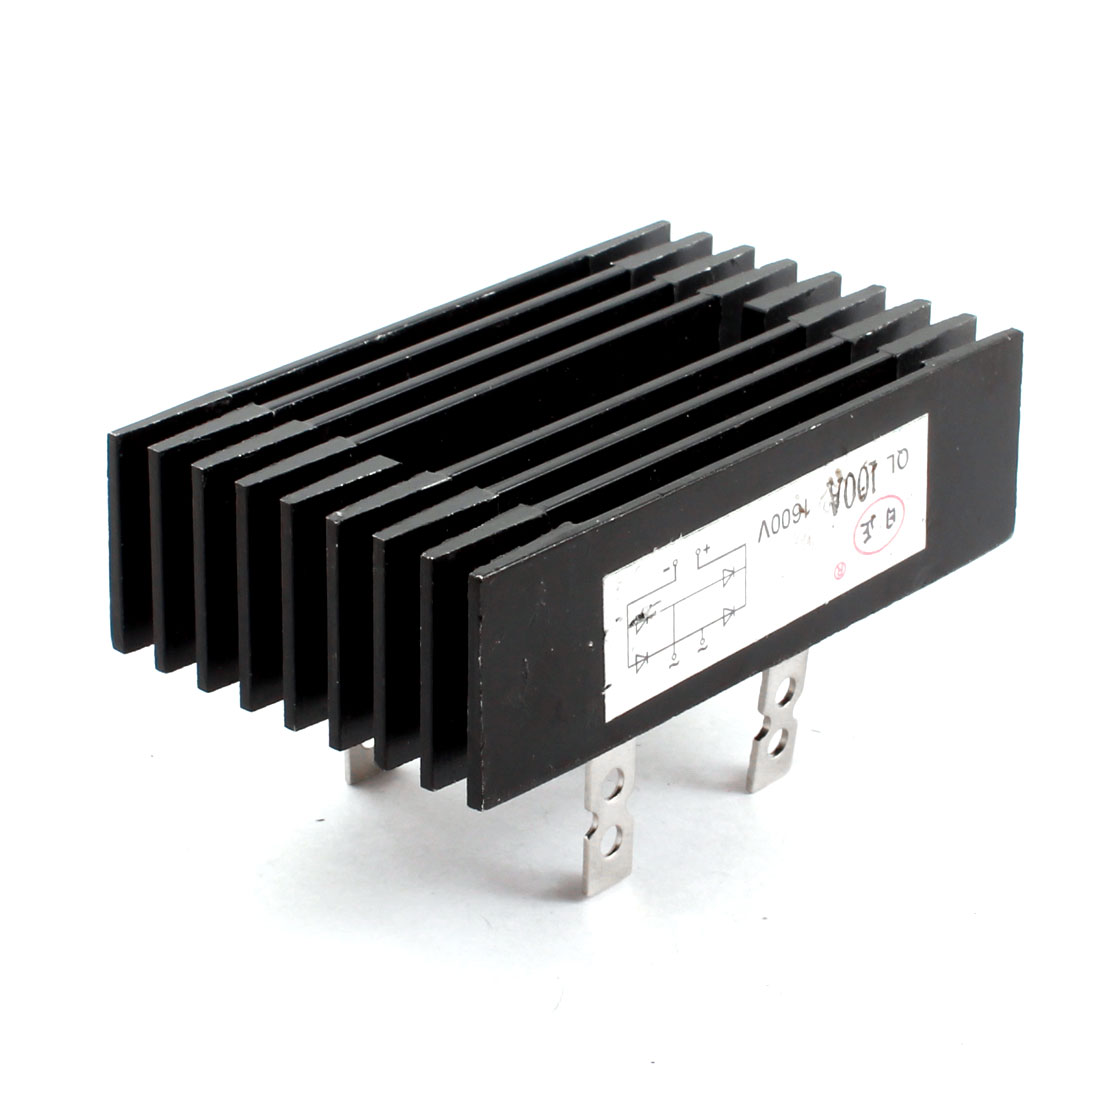 QL Type Black Aluminum Casing Heatsank 1600V 100A 4Pins Single Phase Diode Bridge Rectifier